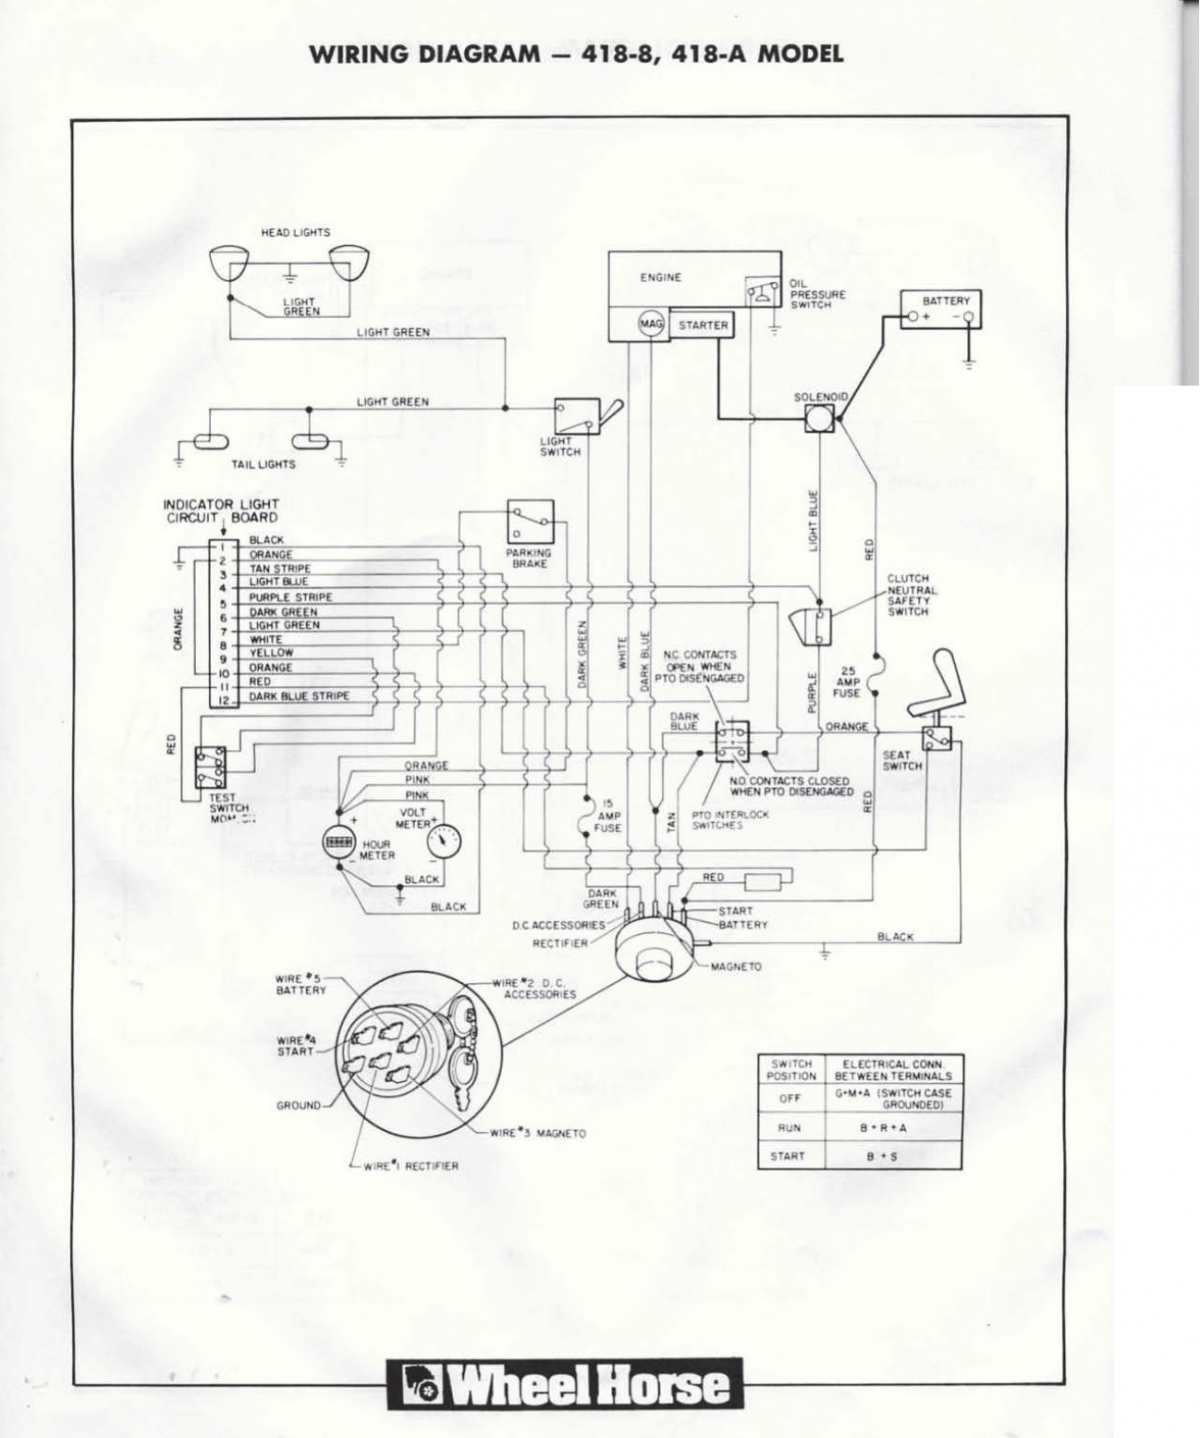 wheel horse 416 wiring diagram images diagram wheel horse wiring diagram as well wheel horse wiring diagram as well